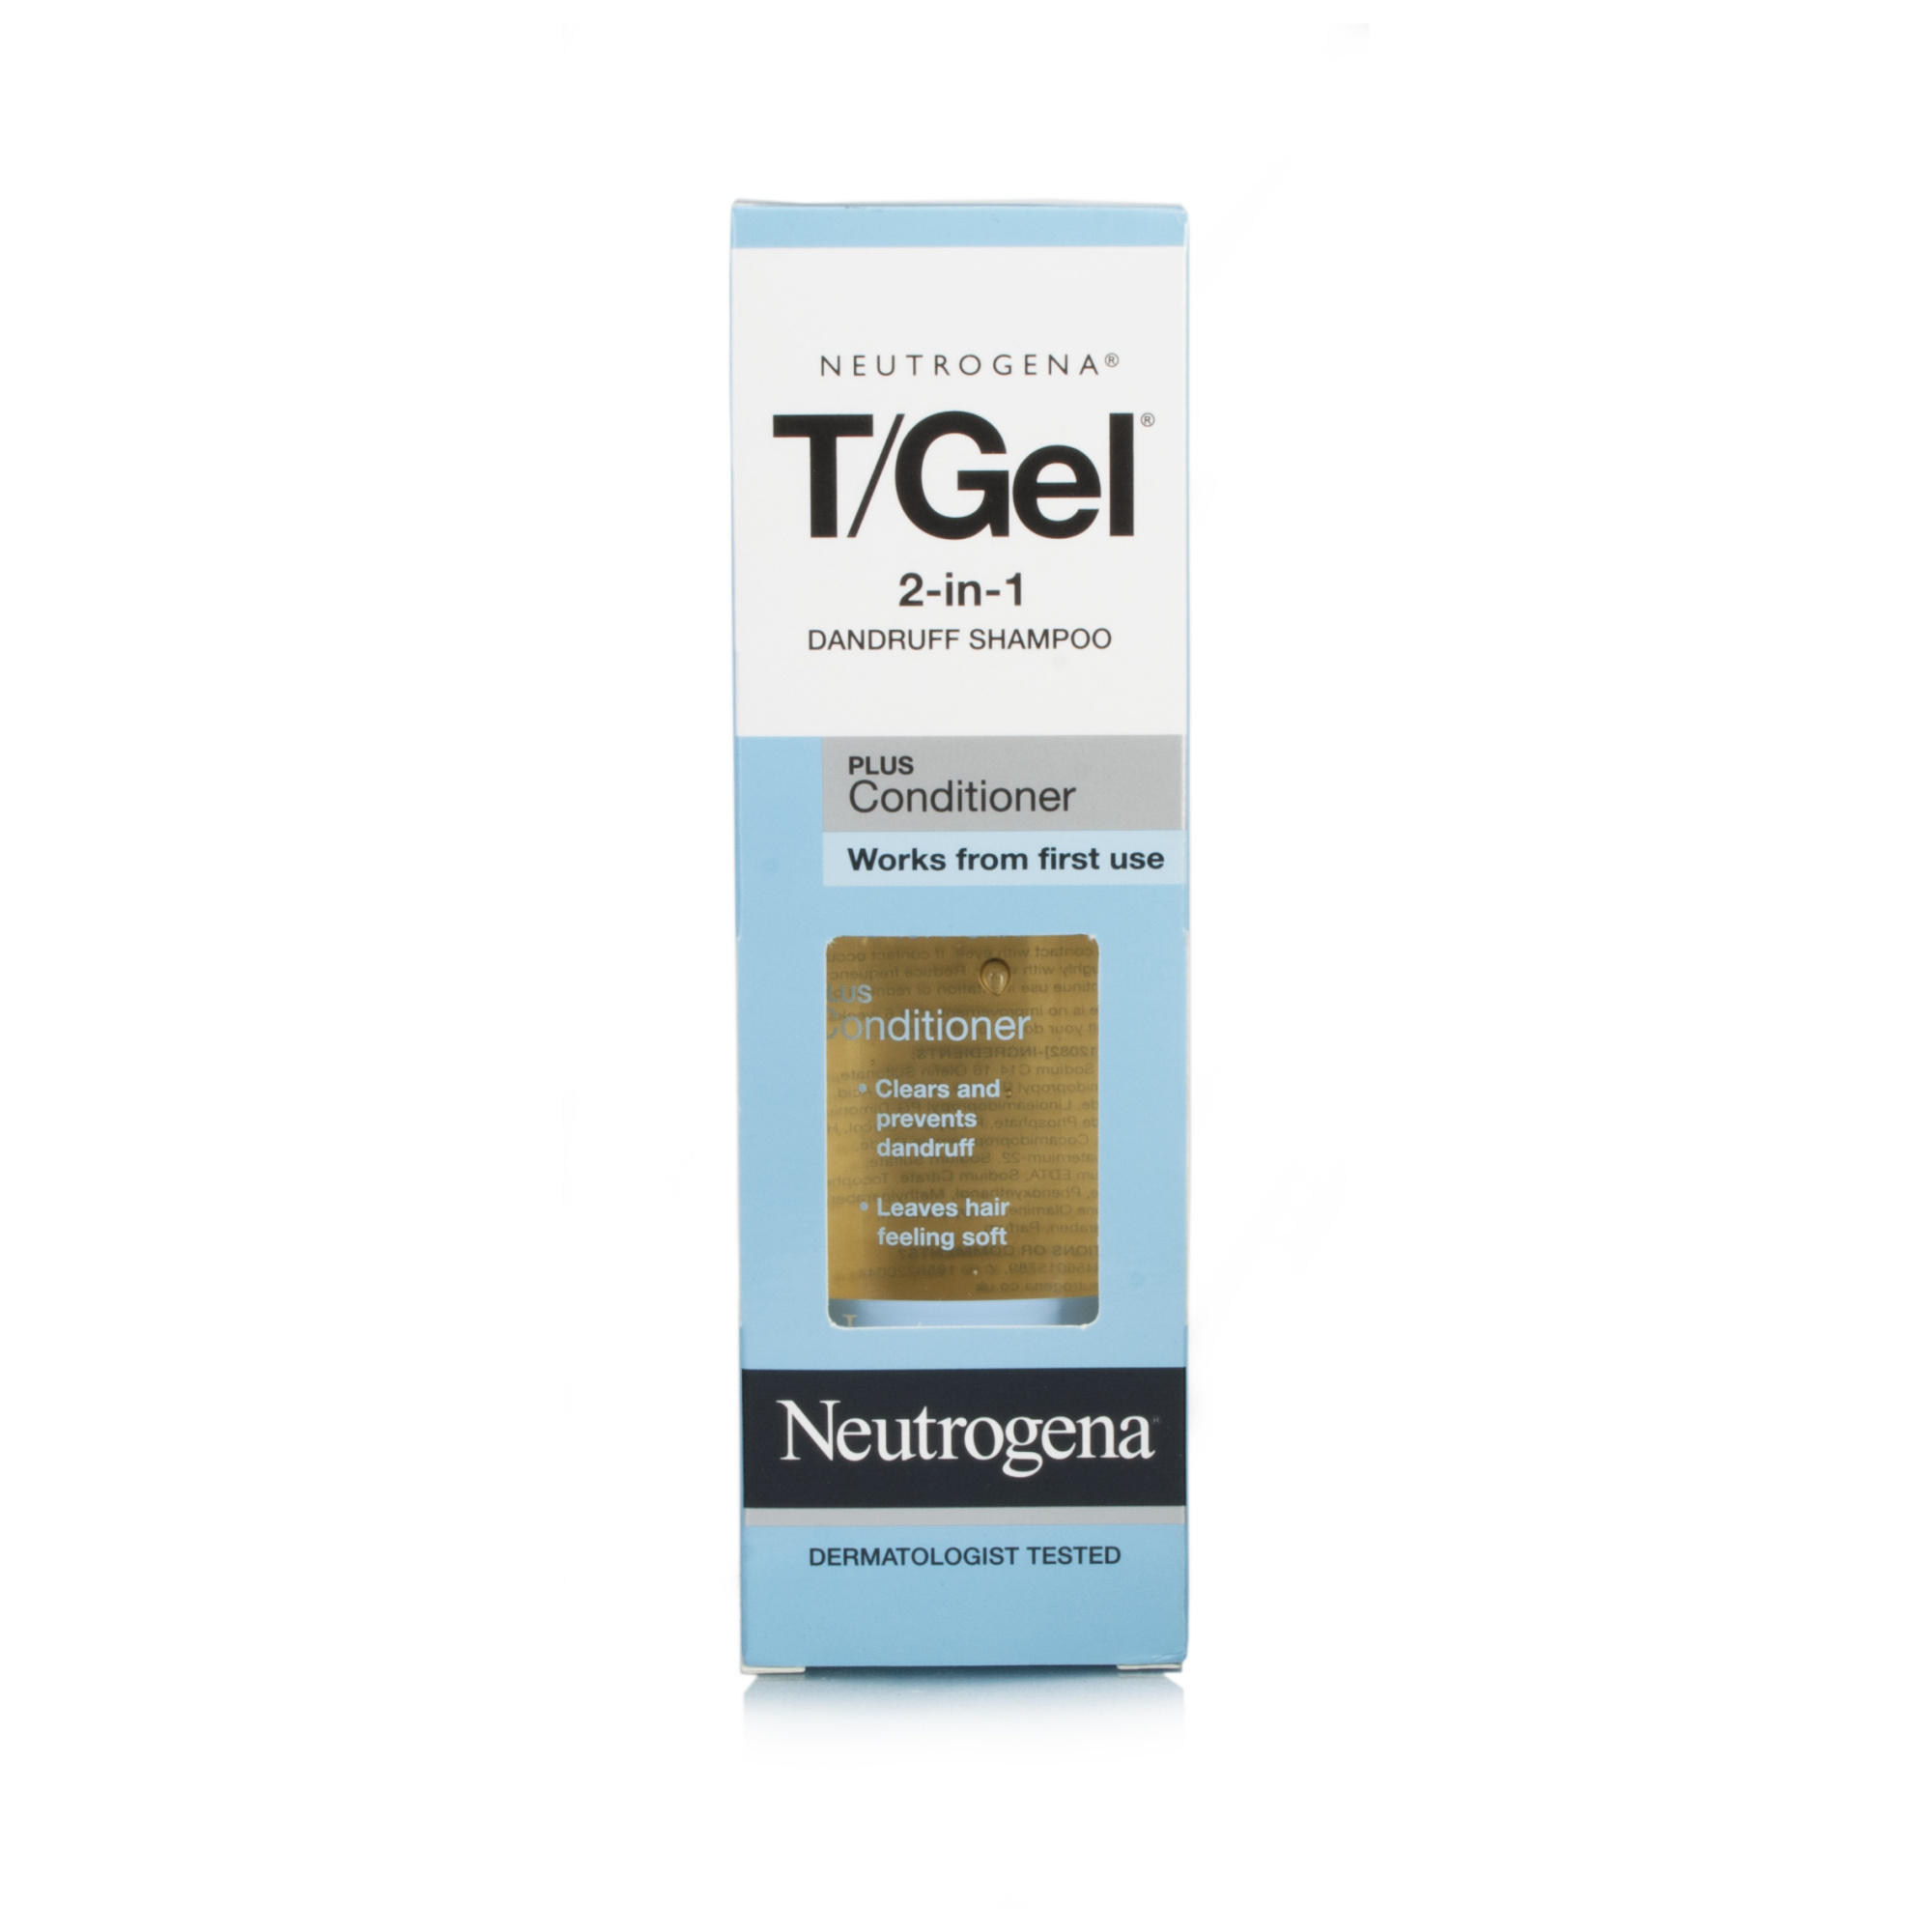 Neutrogena T/Gel 2 in 1 Shampoo & Conditioner